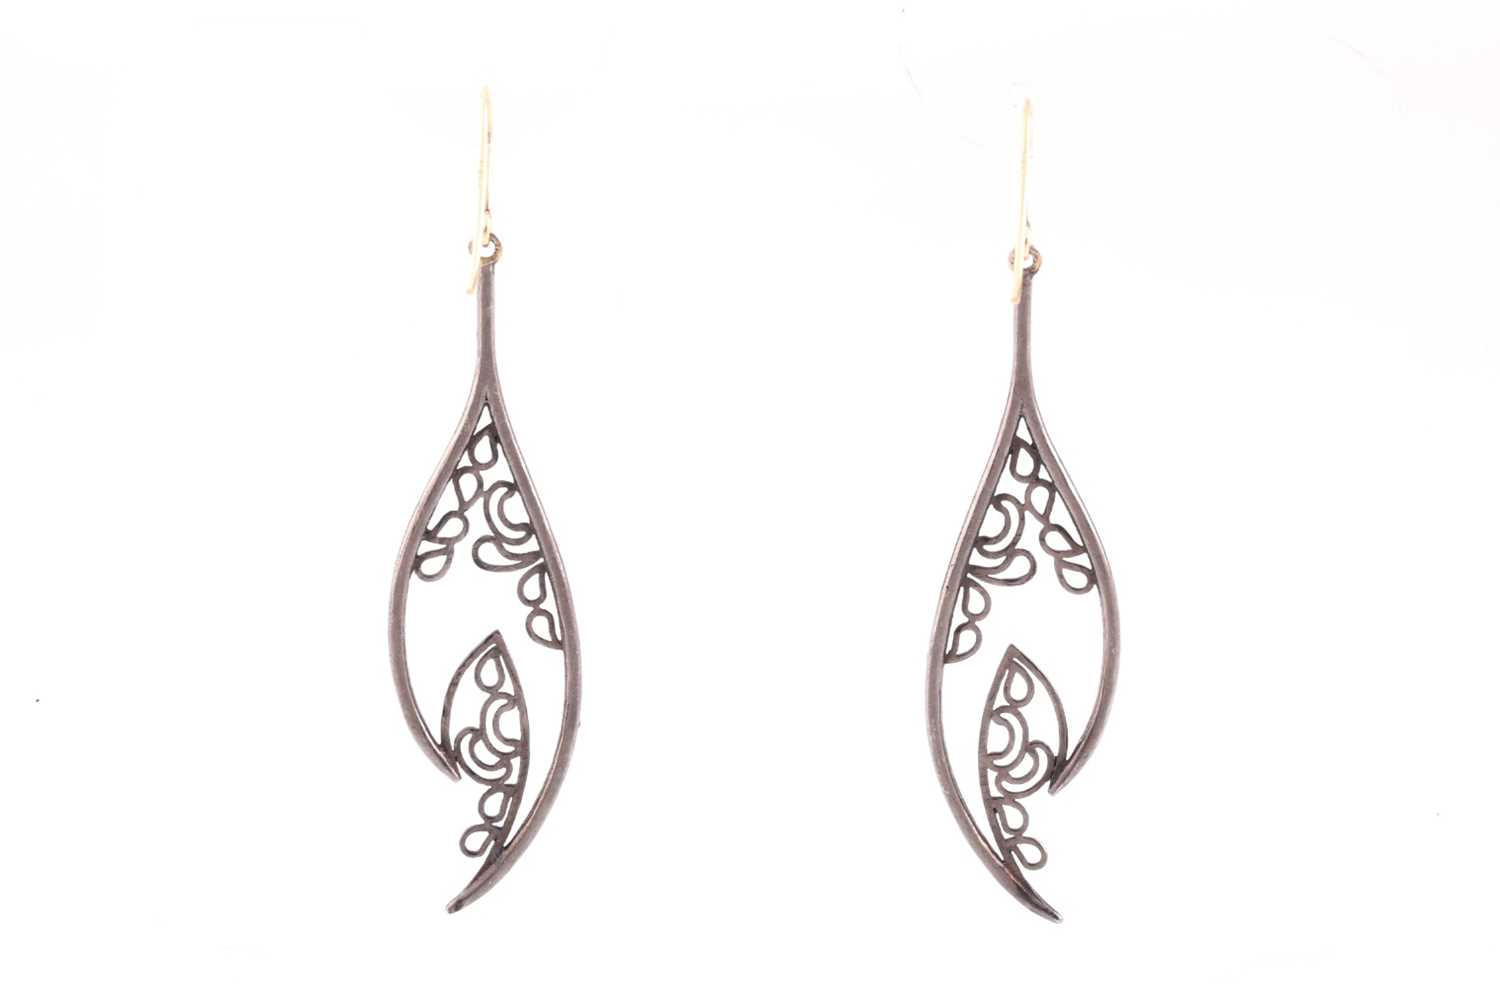 A pair of diamond drop earrings, the silvered openwork mounts inset with mixed old and rose-cut - Image 2 of 2